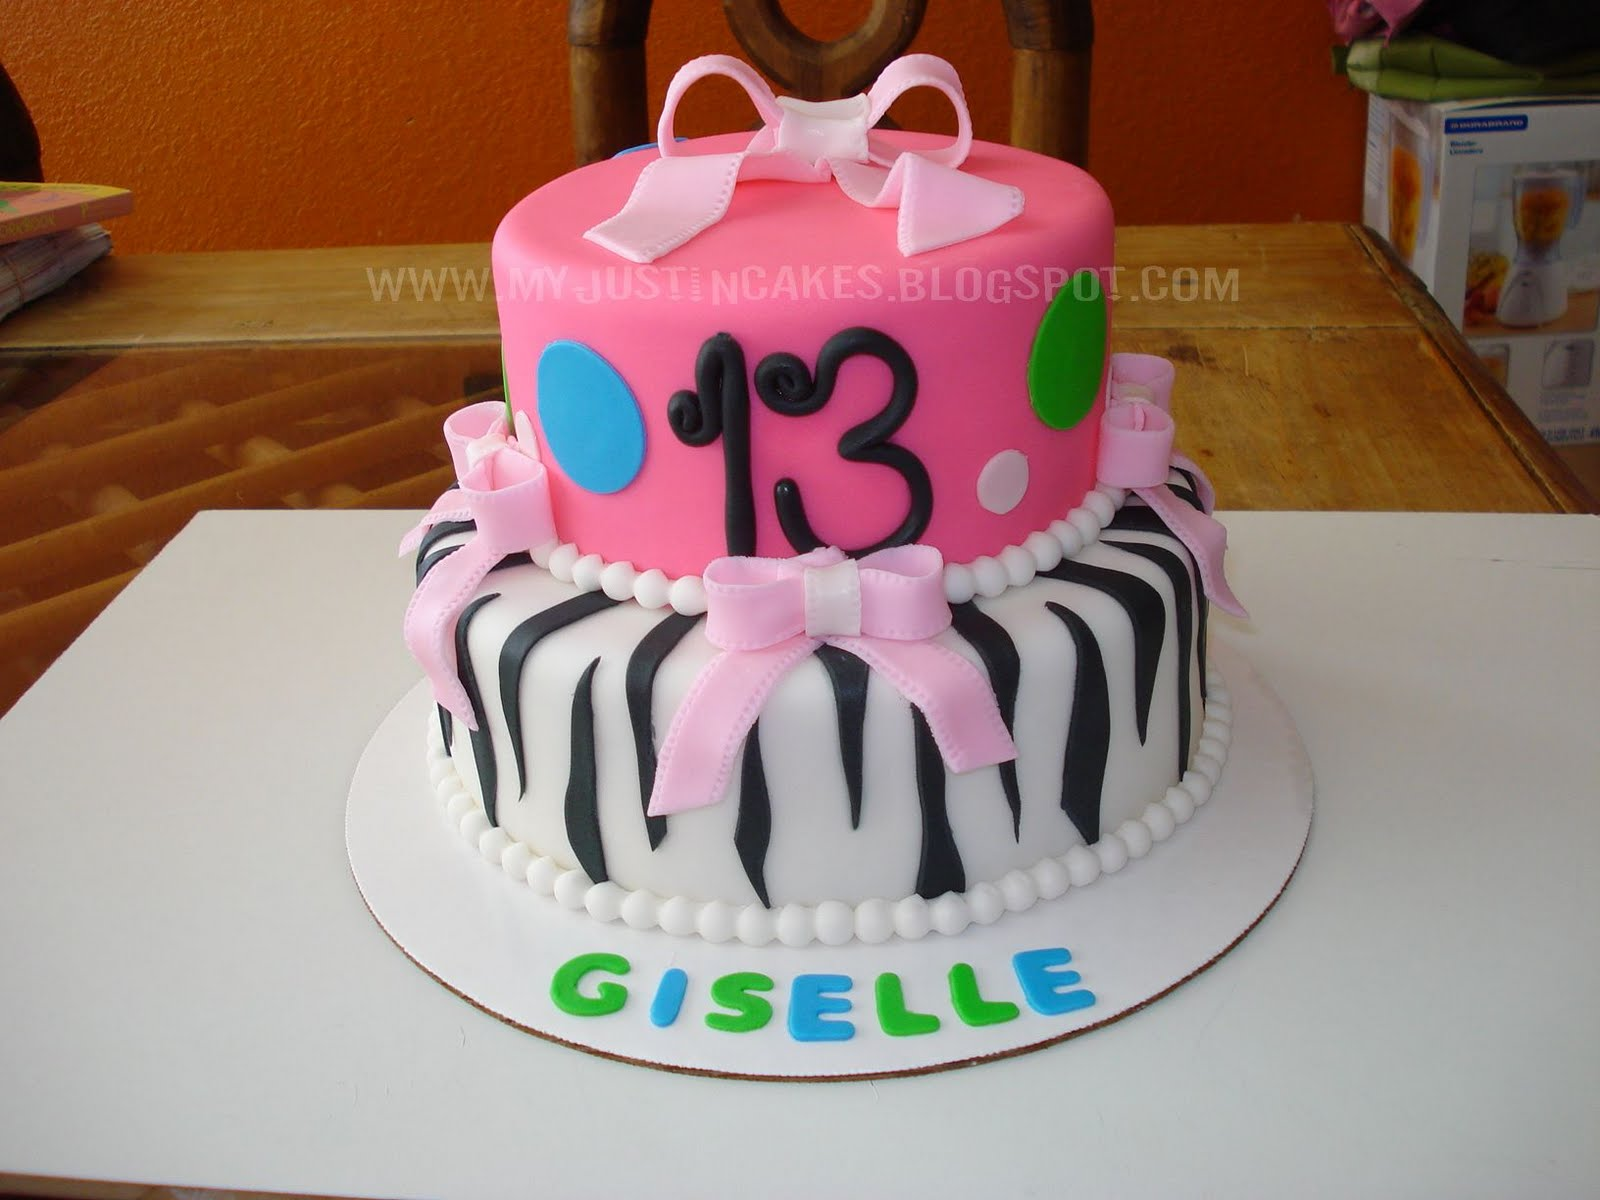 13 year old birthday cakes for girls